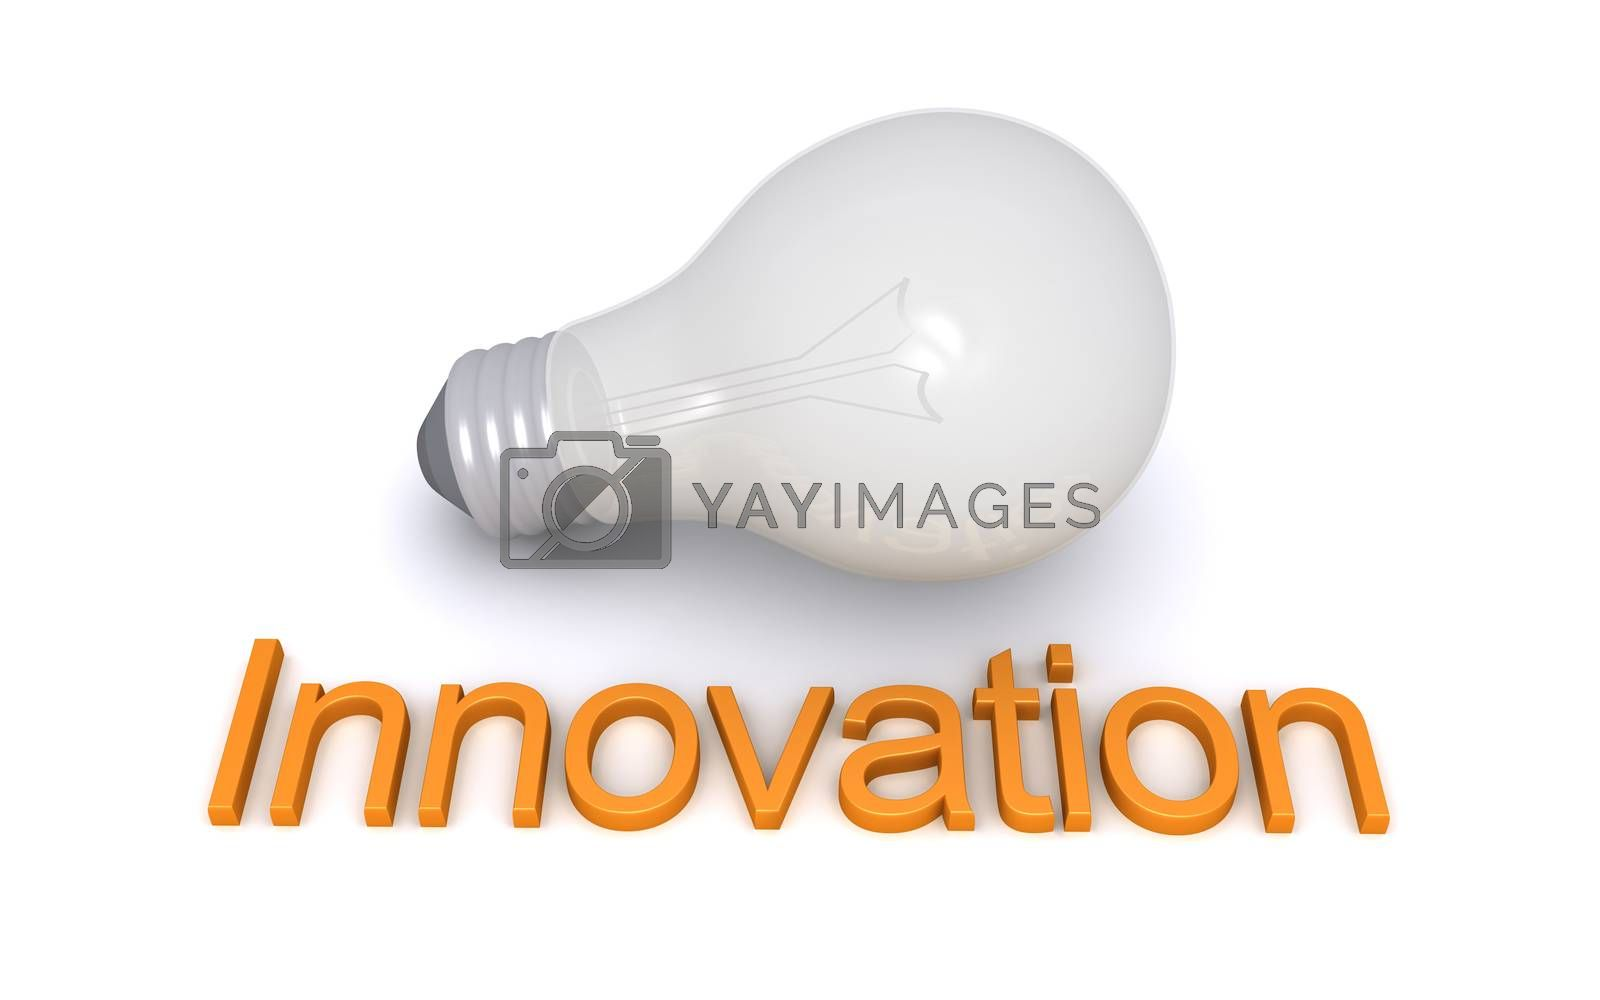 Light bulb is on the ground and in front of it is an Innovation word